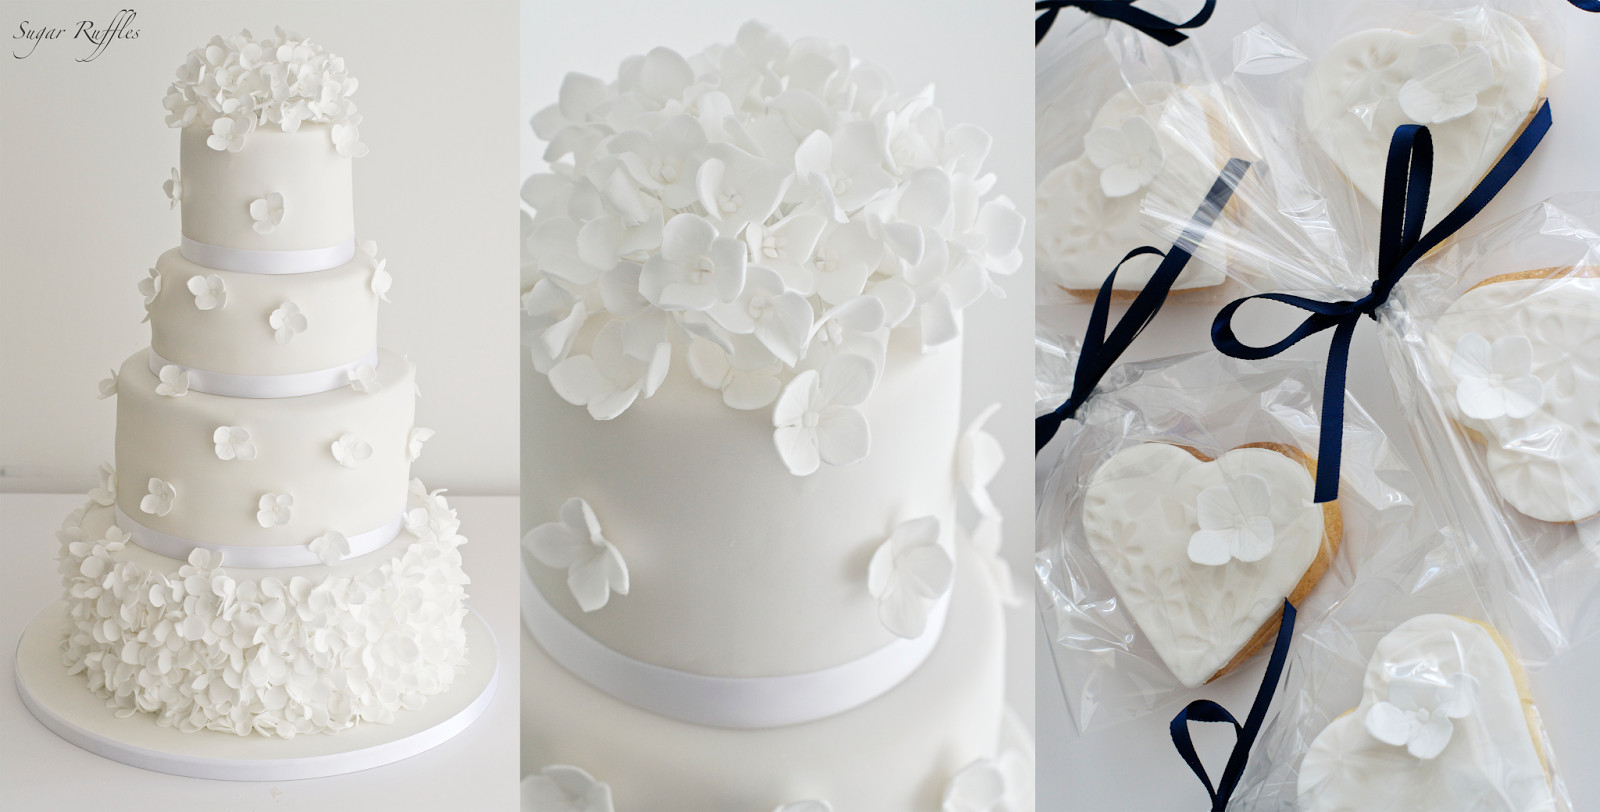 Ruffled Wedding Cakes  Petal ruffle wedding cake with hydrangea flowers